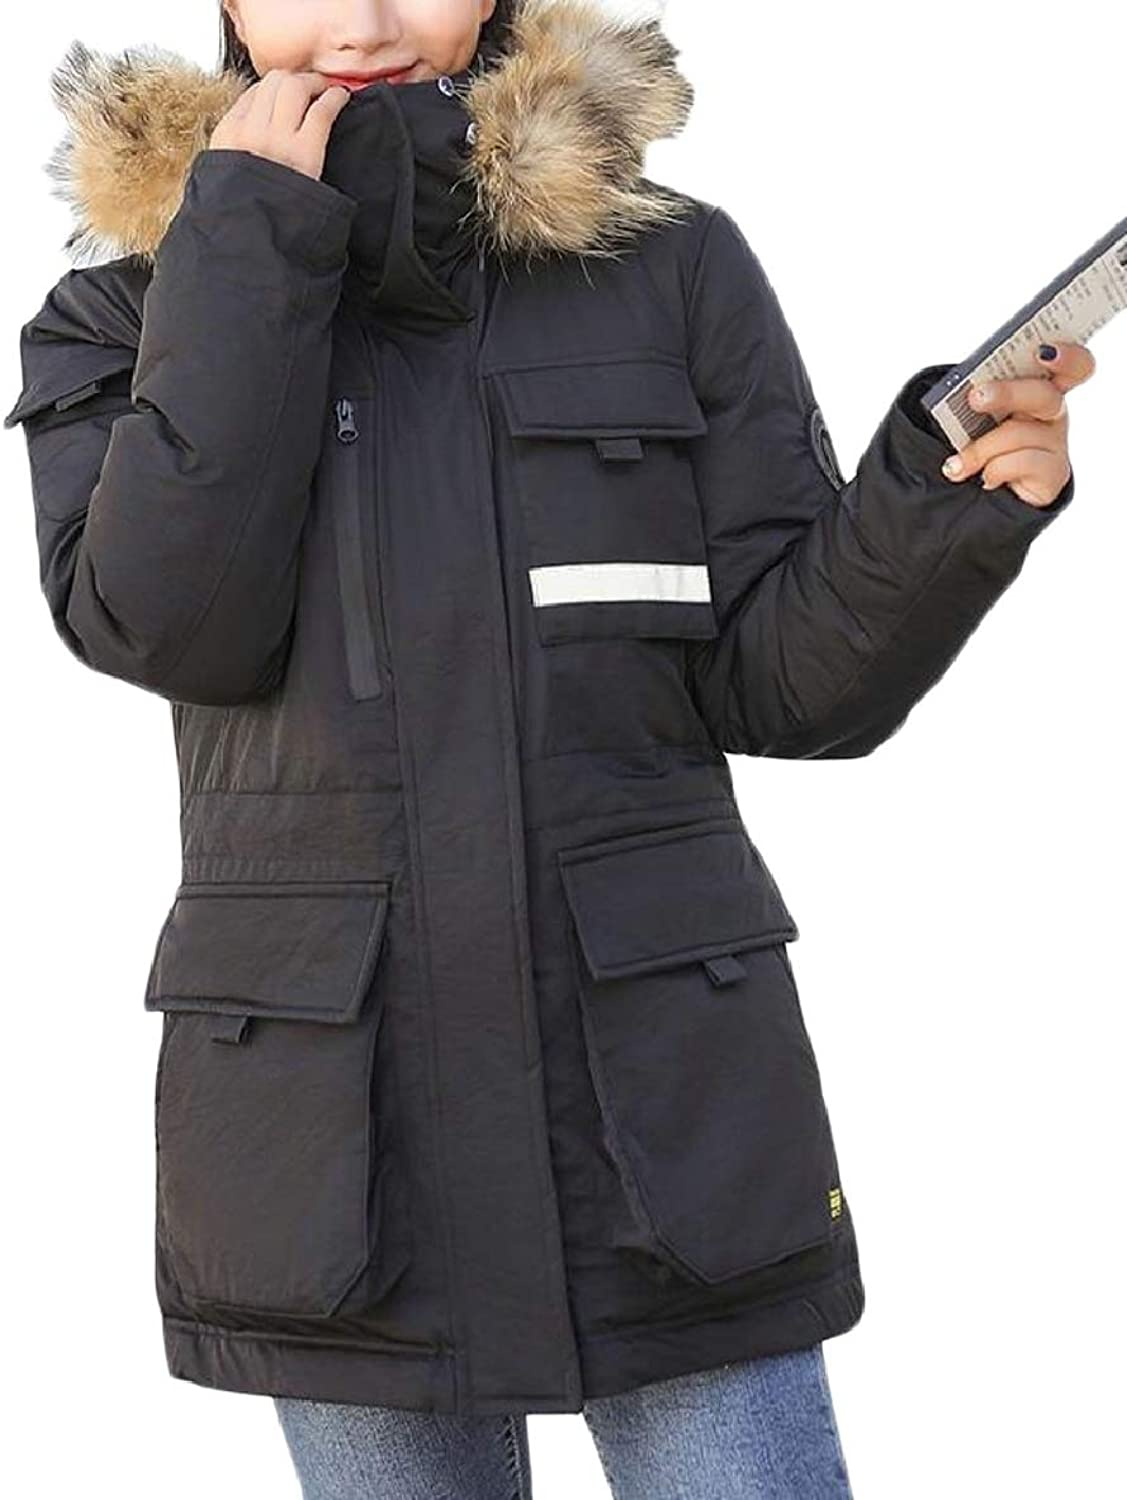 Womens Winter Thick Warm Outdoors Hooded Coat Jacket Outwear